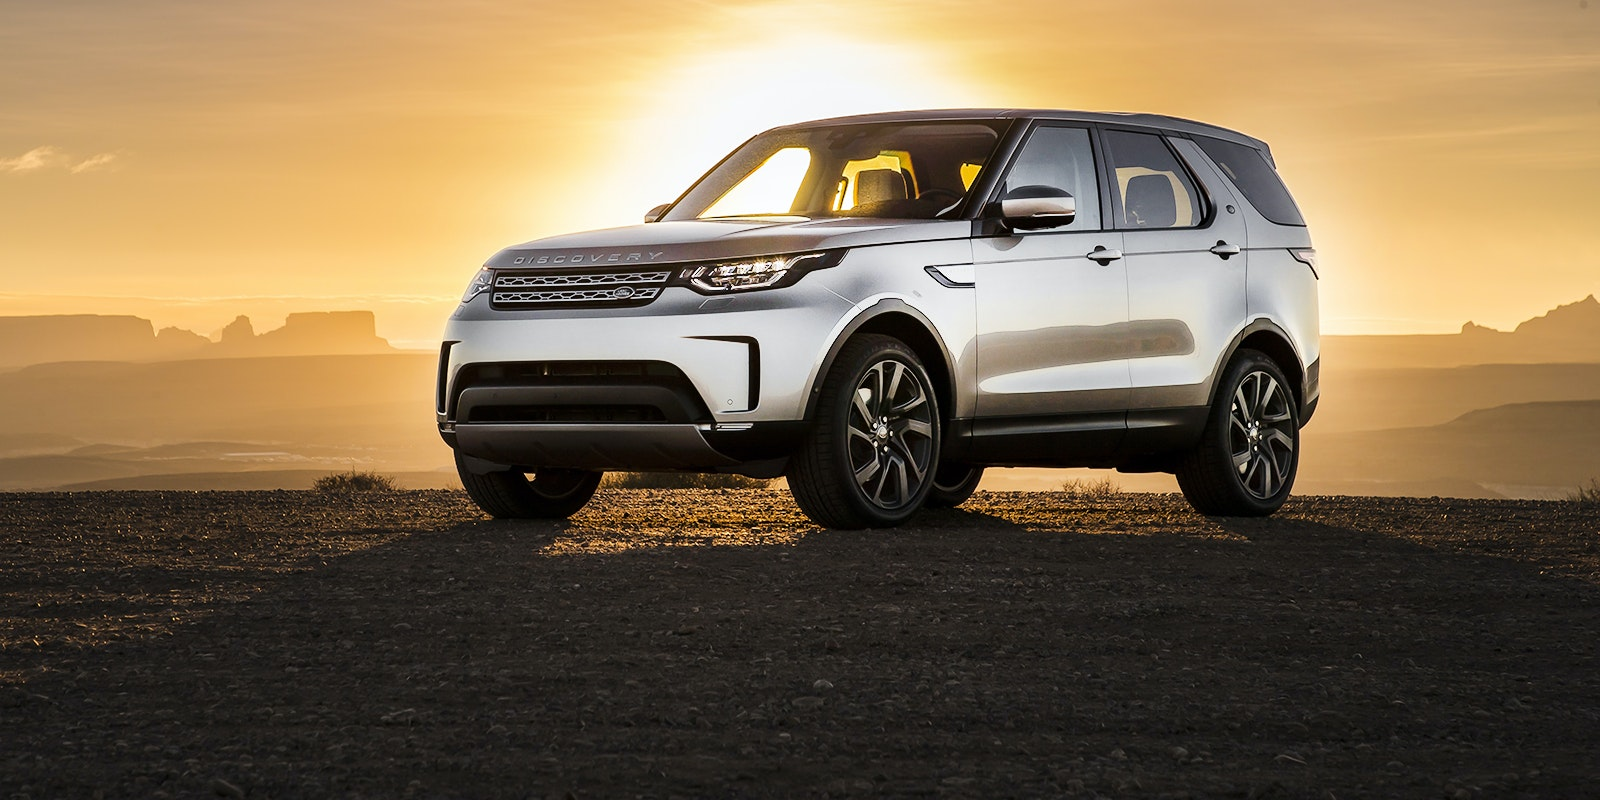 Land rover discovery header 2.jpg?ixlib=rb 1.1